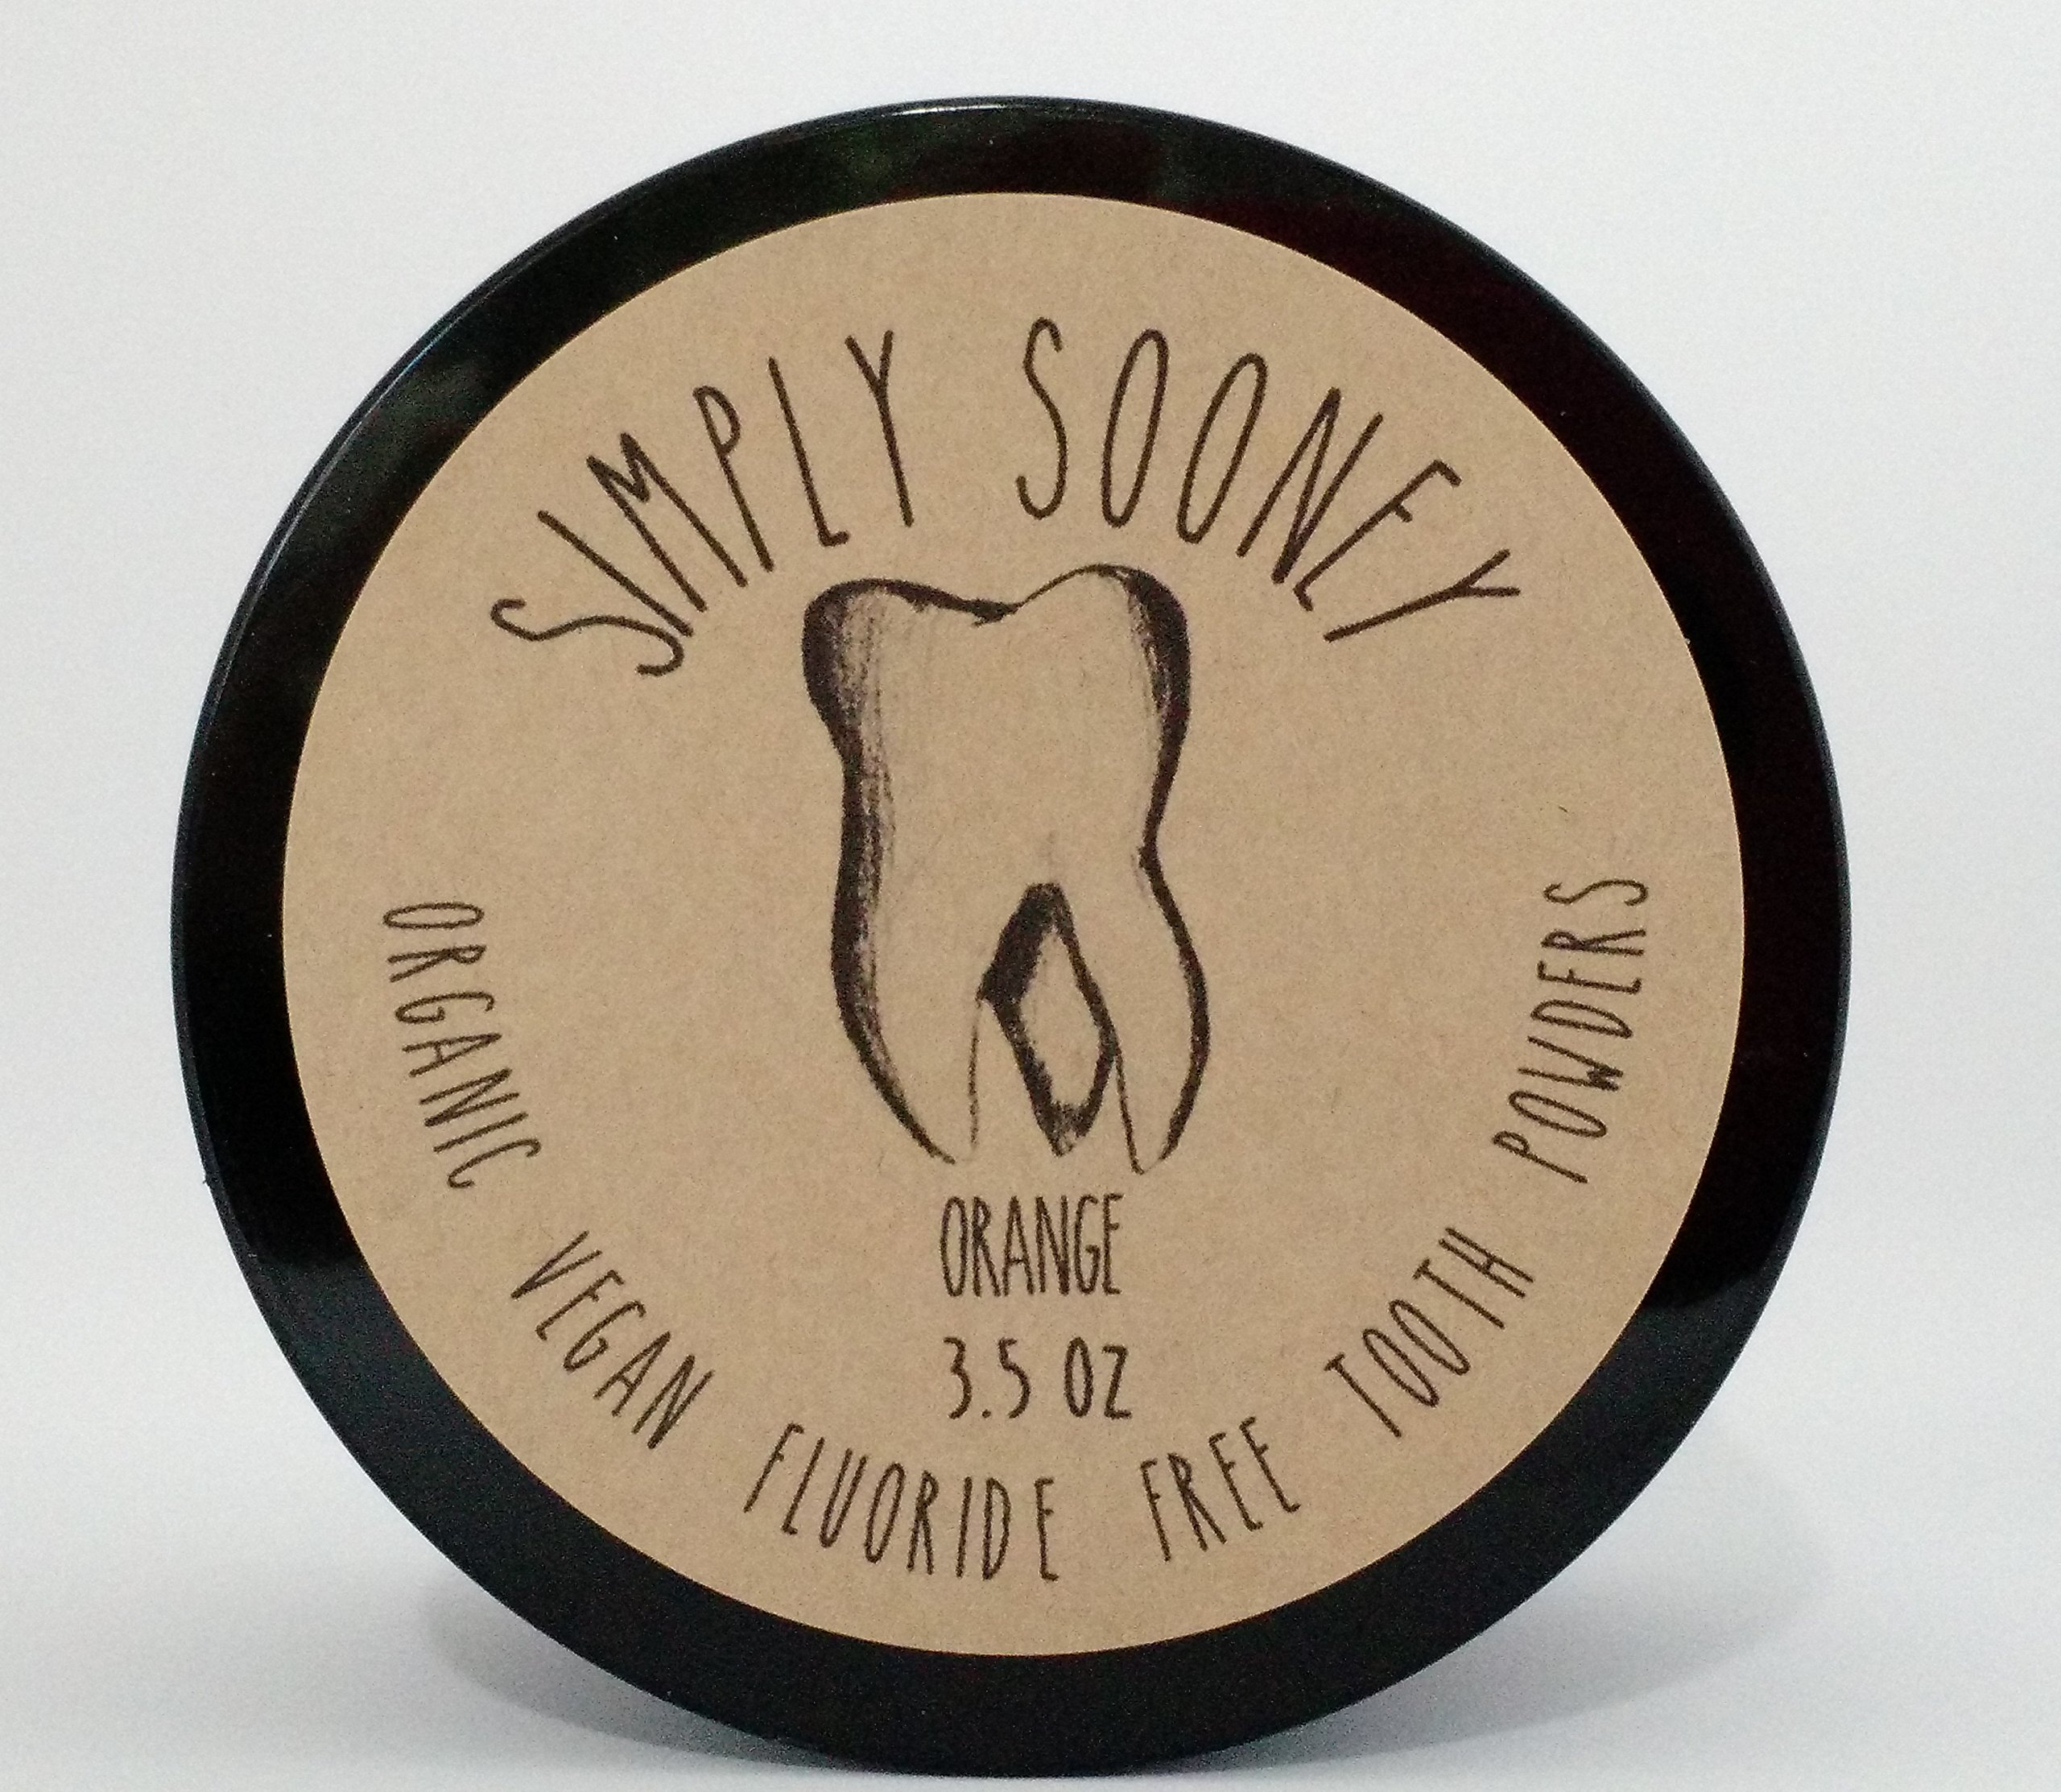 Simply Sooney Organic Vegan Fluoride Free Remineralizing Tooth Powder Orange Formula 3.5oz Suitable For Children Of All Ages (6 month supply, 100 grams)